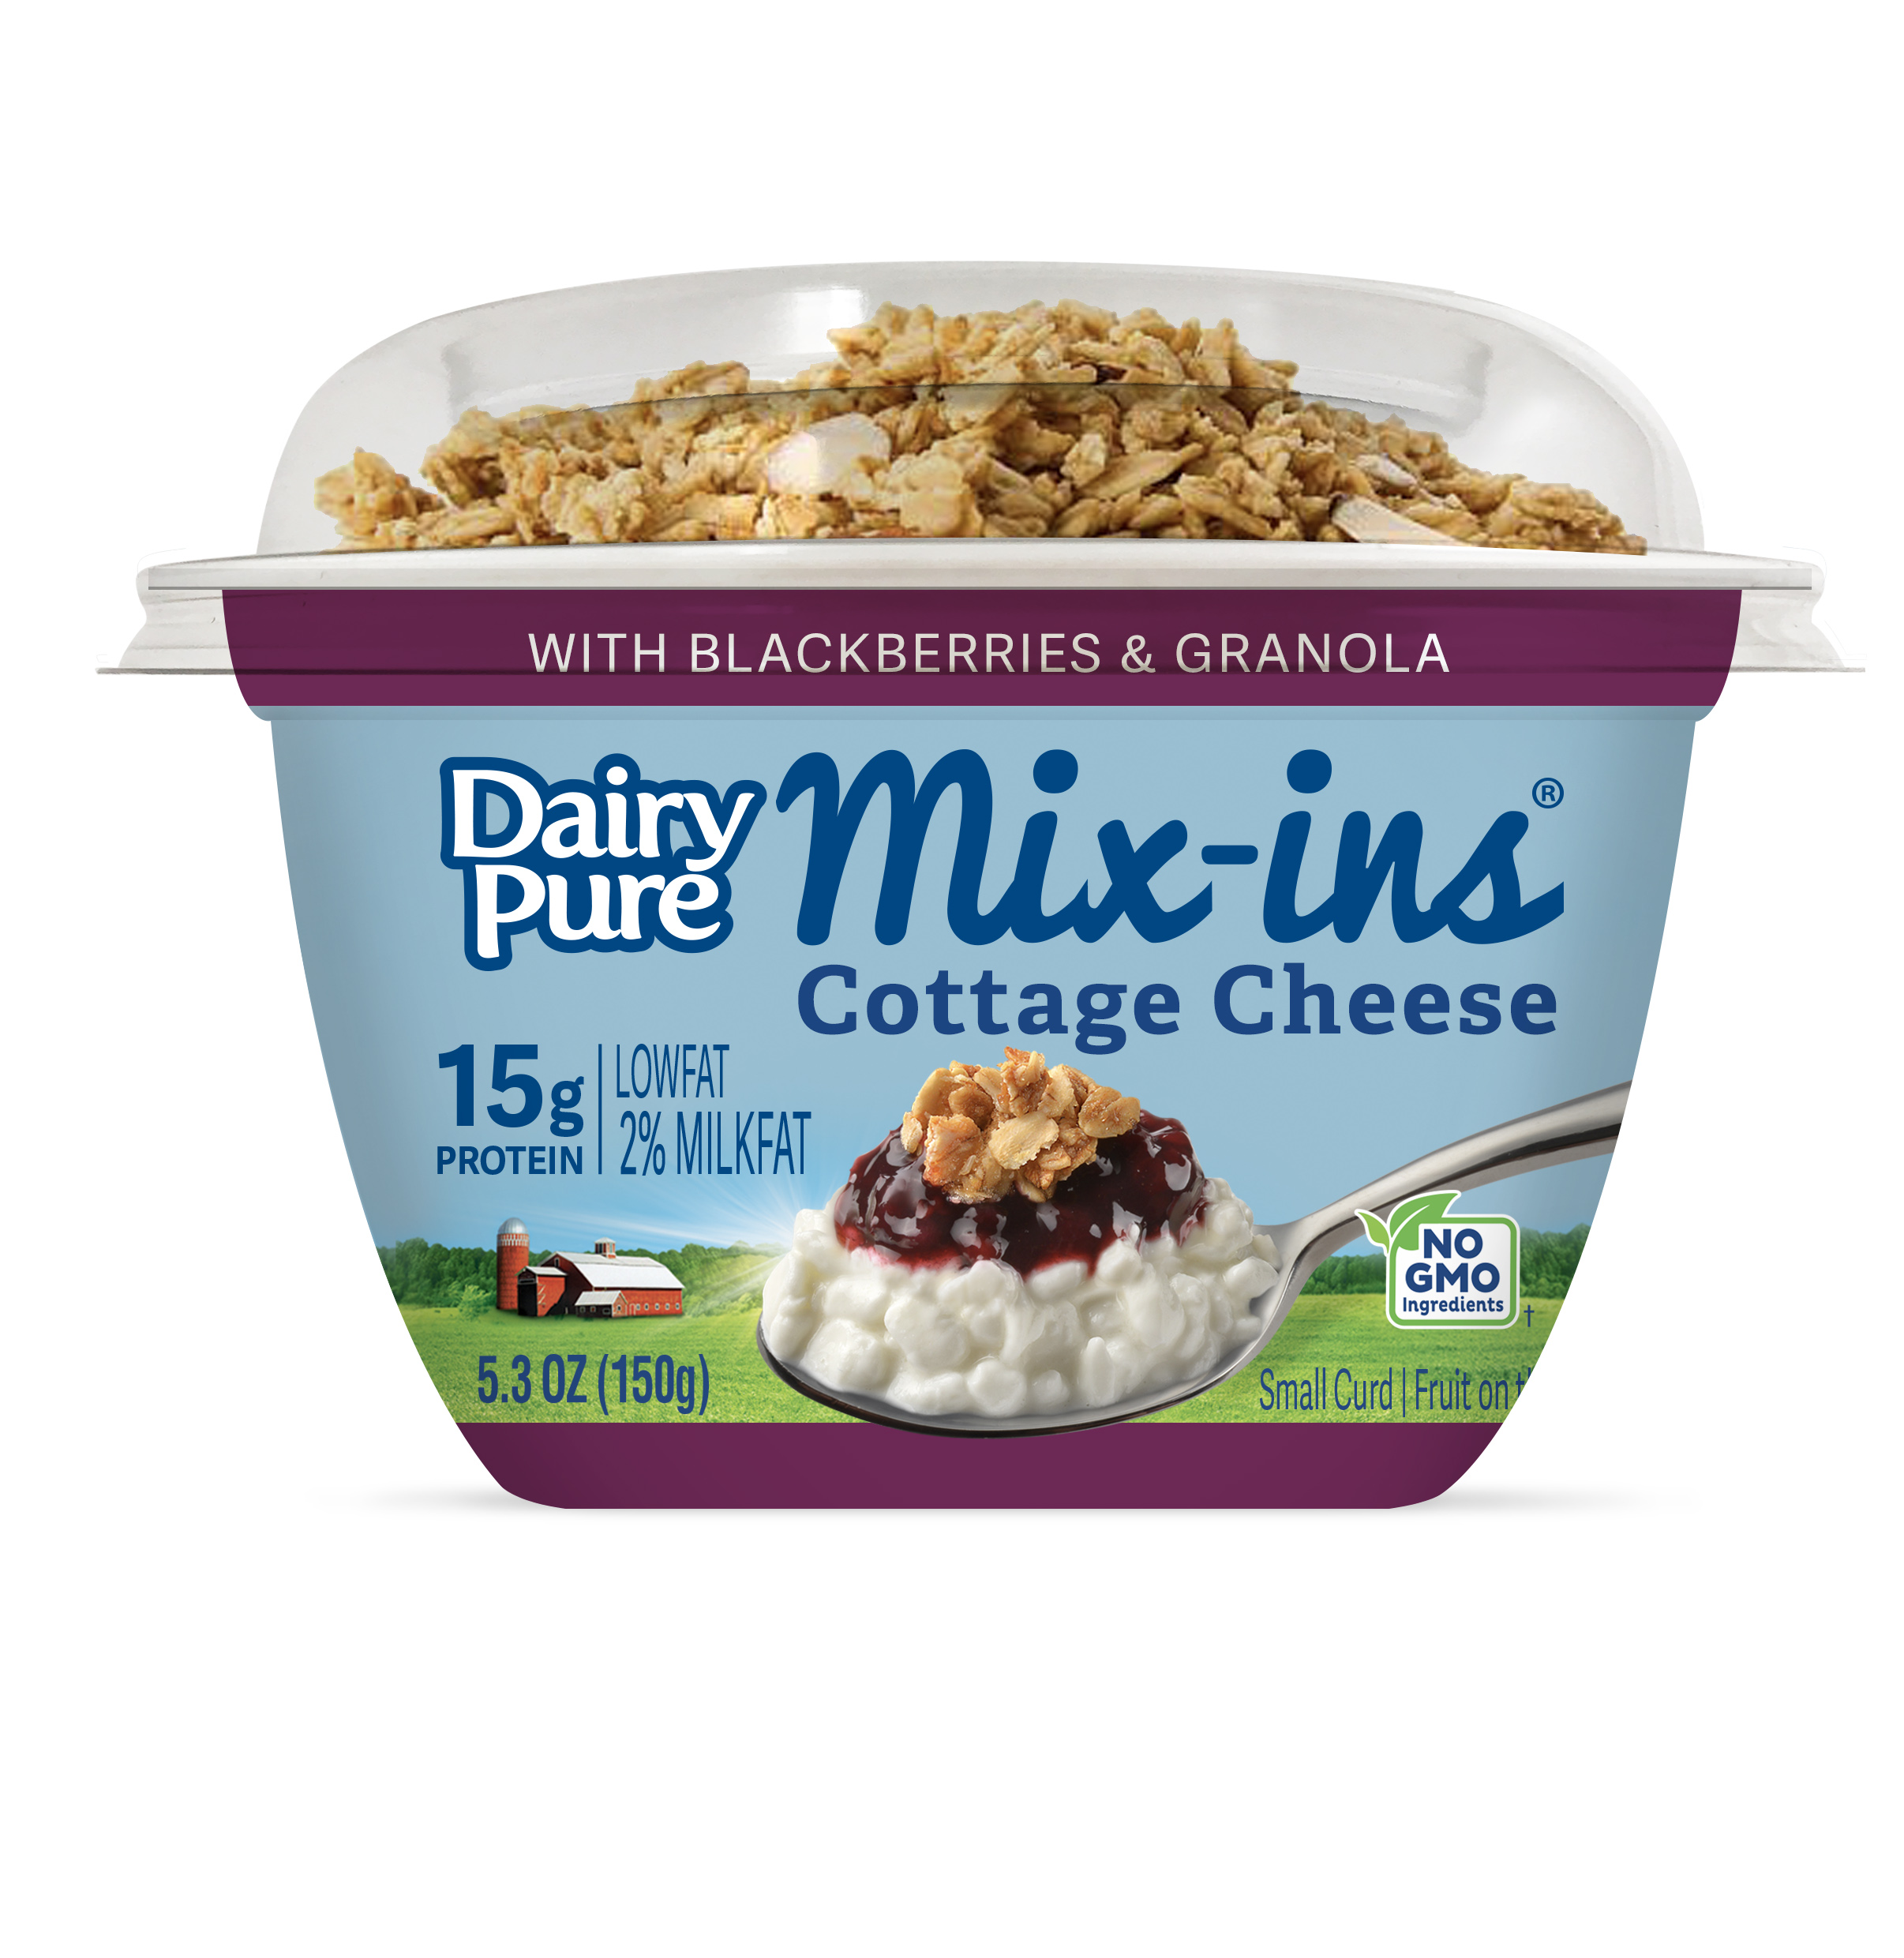 DairyPure Mix-ins Blackberries & Granola